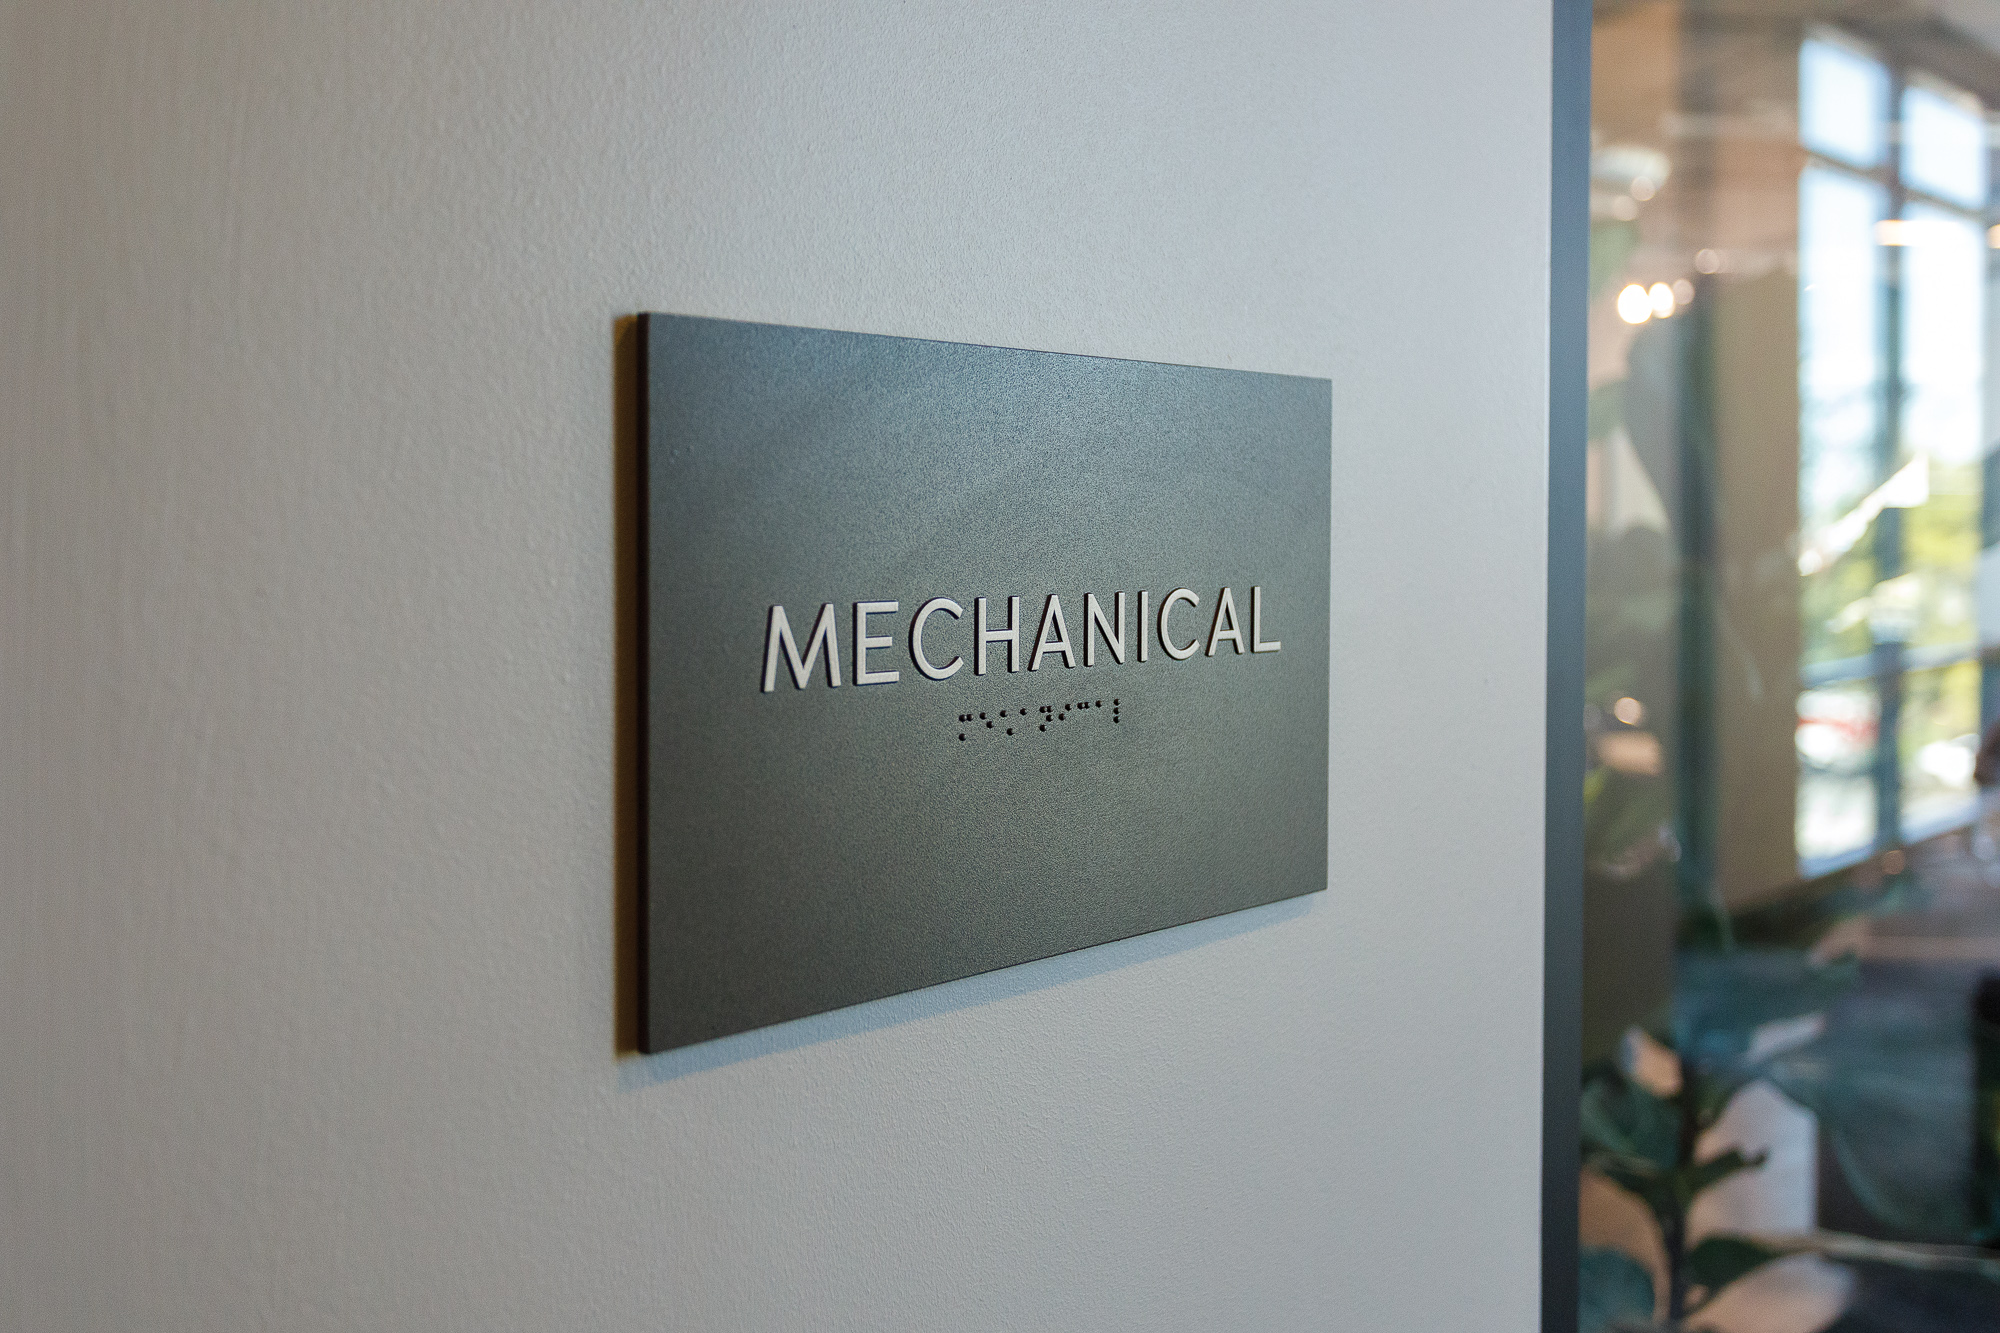 Vertis-Green-Hills_Signage_Required by Building Codes_Mechanical_MG_5304_small 2000 px.jpg